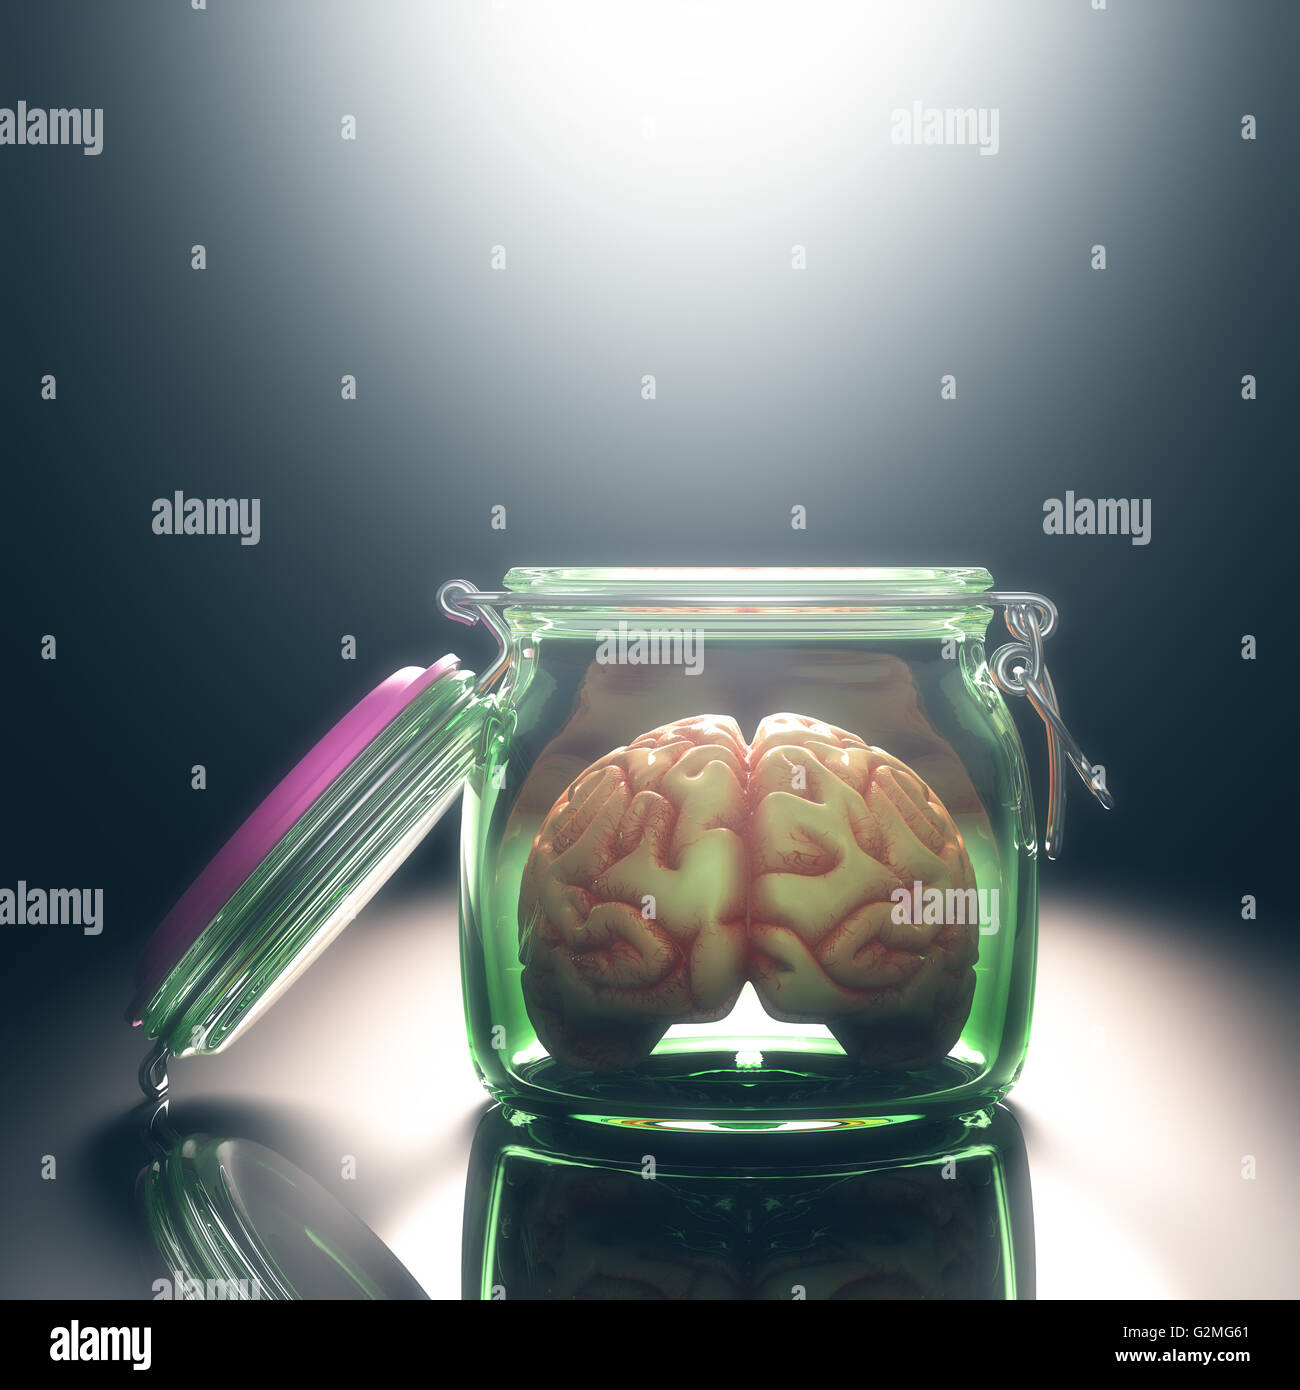 Brain in the pot with the lid open. Open and free mind concept. Your text on the light. Clipping path included. - Stock Image